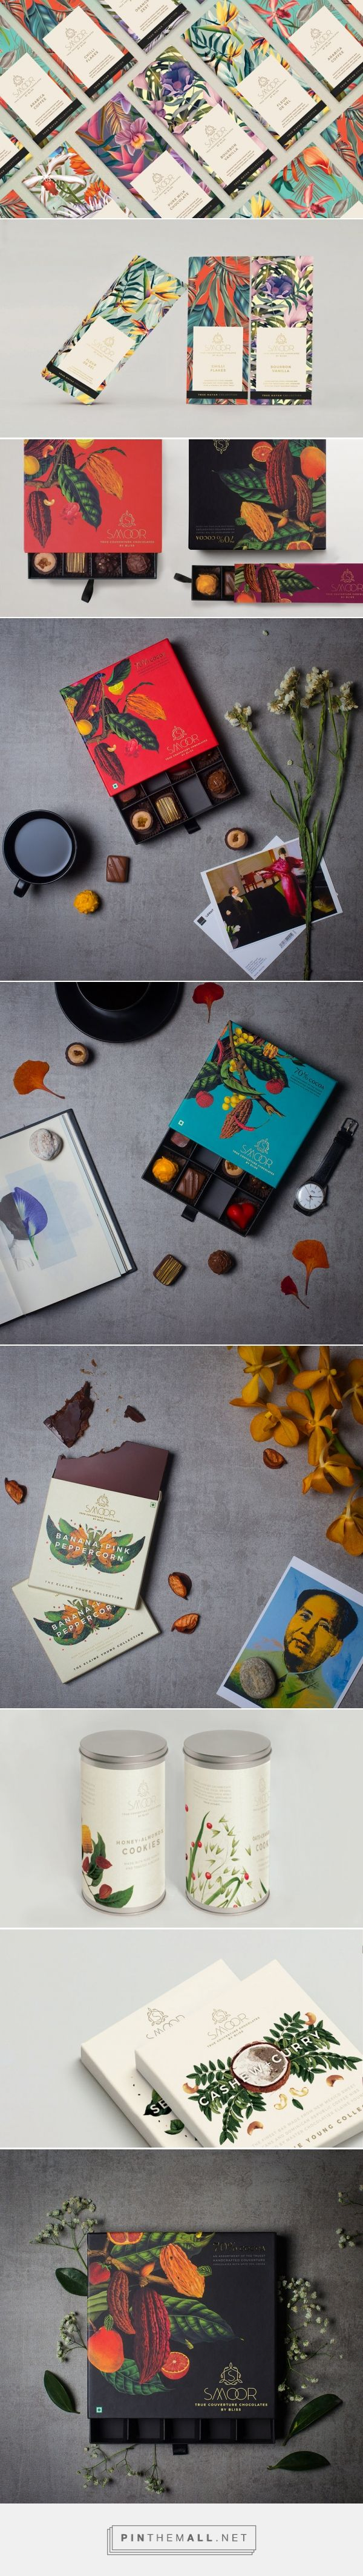 Bliss Chocolates — design by Bloombox Brand Engineers